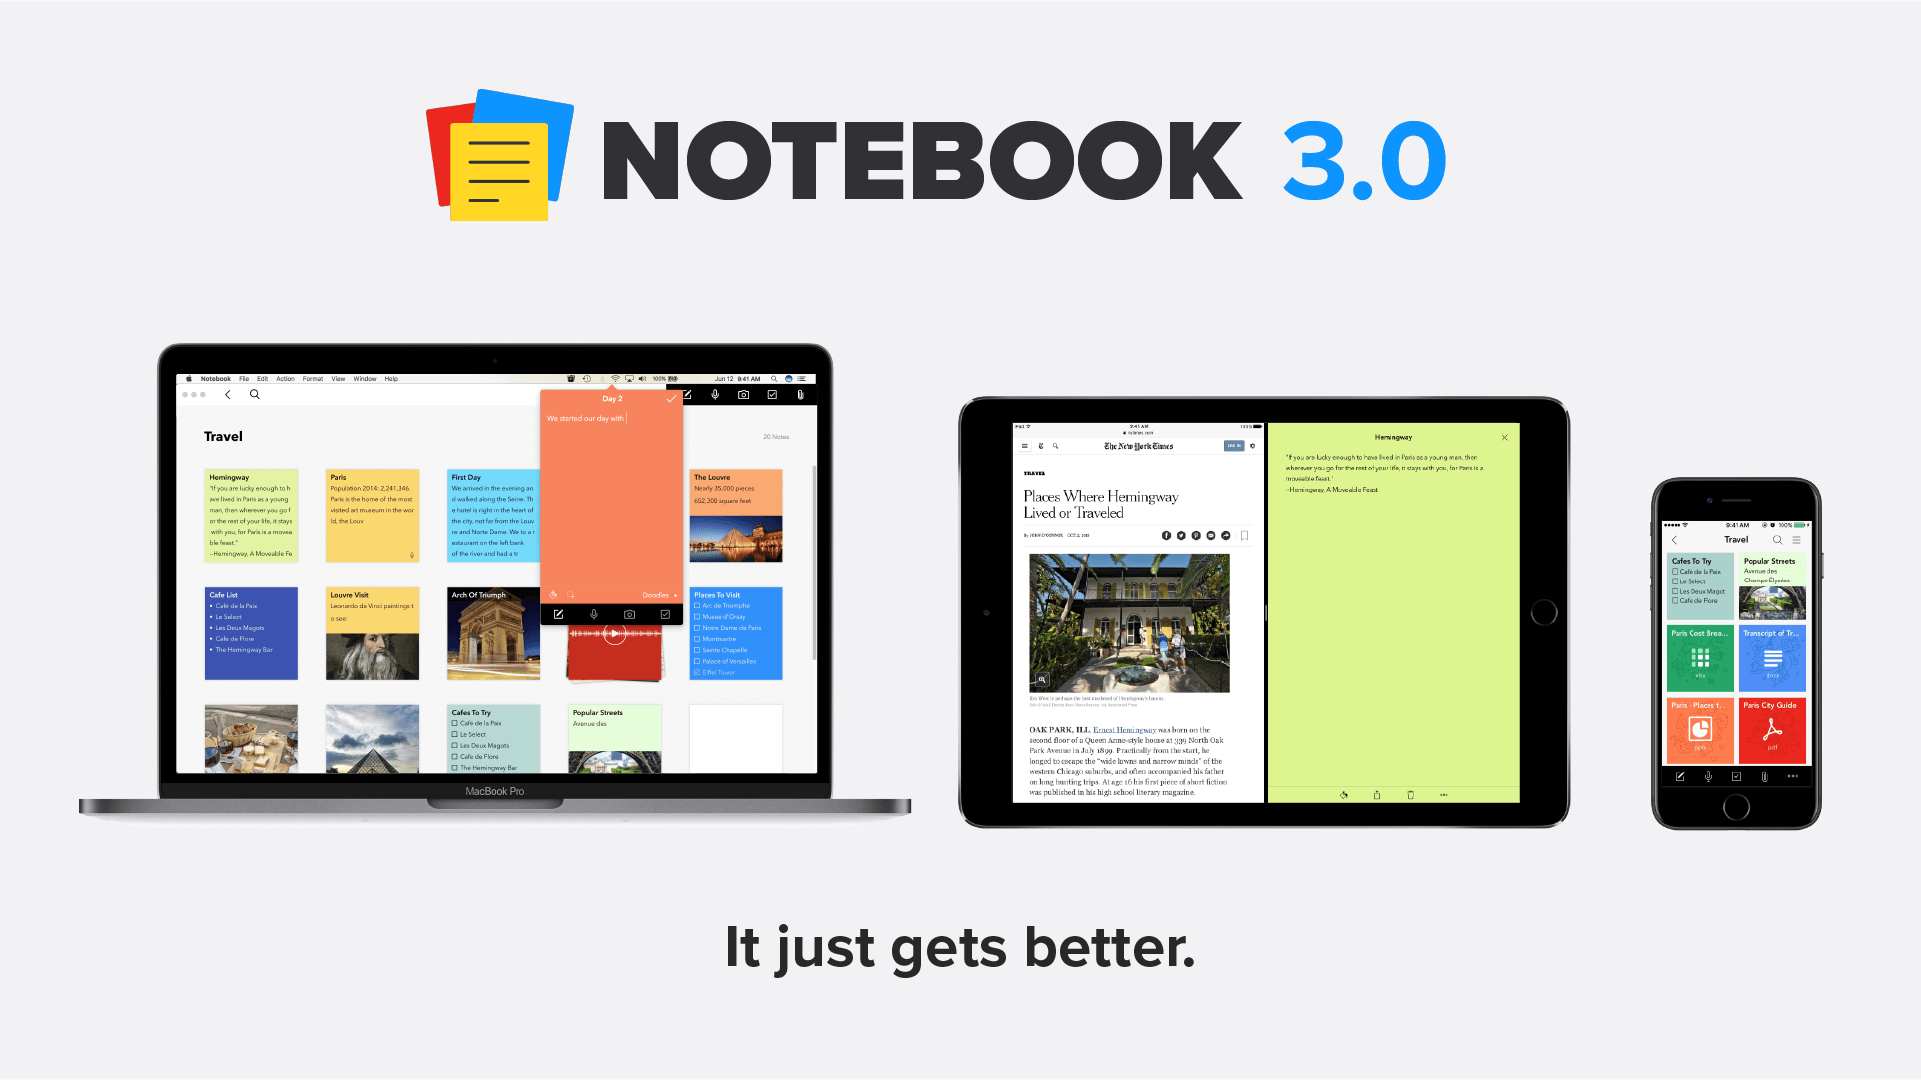 Notebook 3.0: Introducing File Card, Web Clipper for Safari, Import from Evernote, and Much More